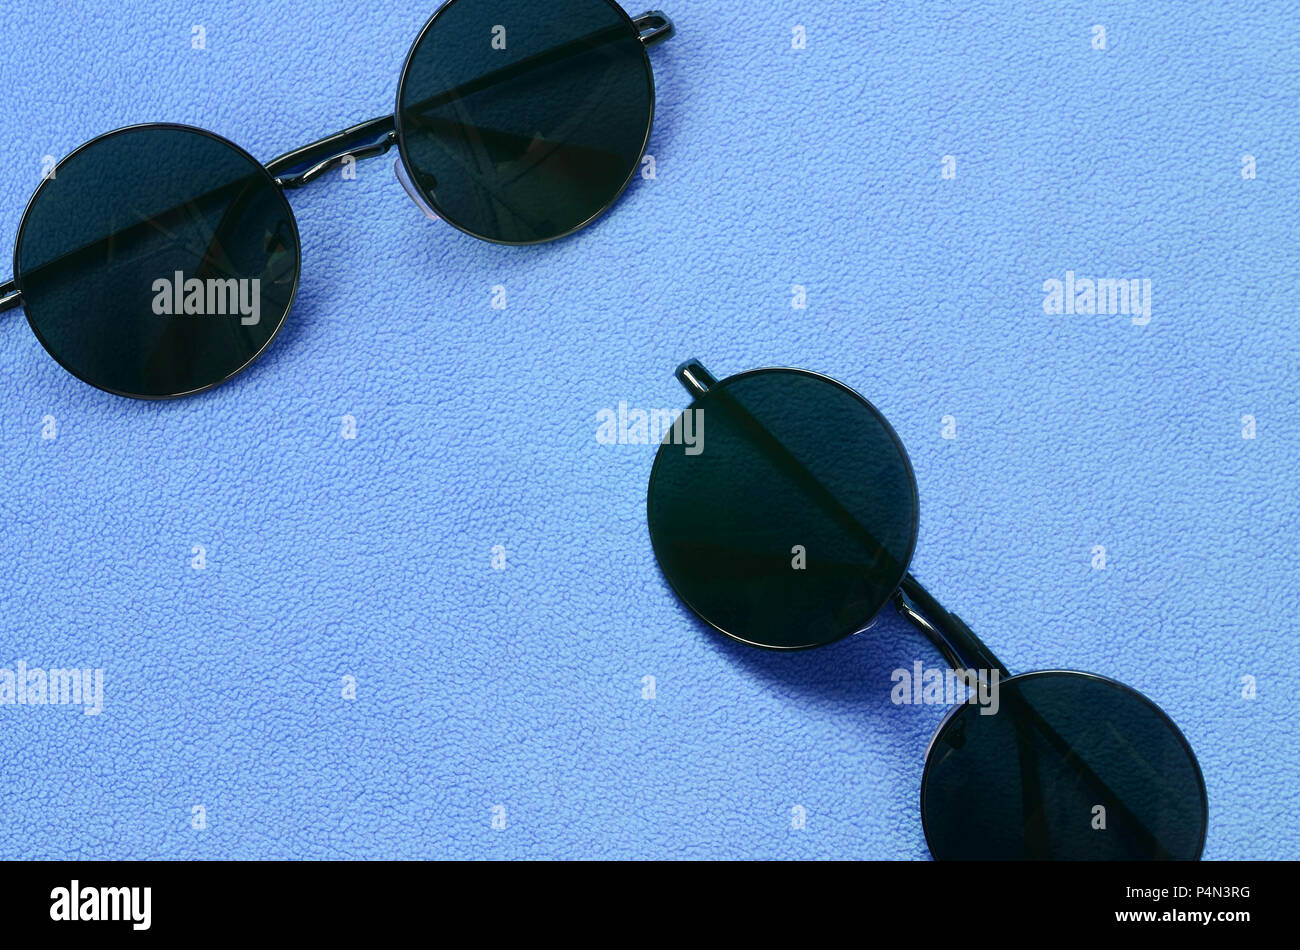 4d88b5c93647 Two stylish black sunglasses with round glasses lies on a blanket made of  soft and fluffy light blue fleece fabric. Fashionable background picture in